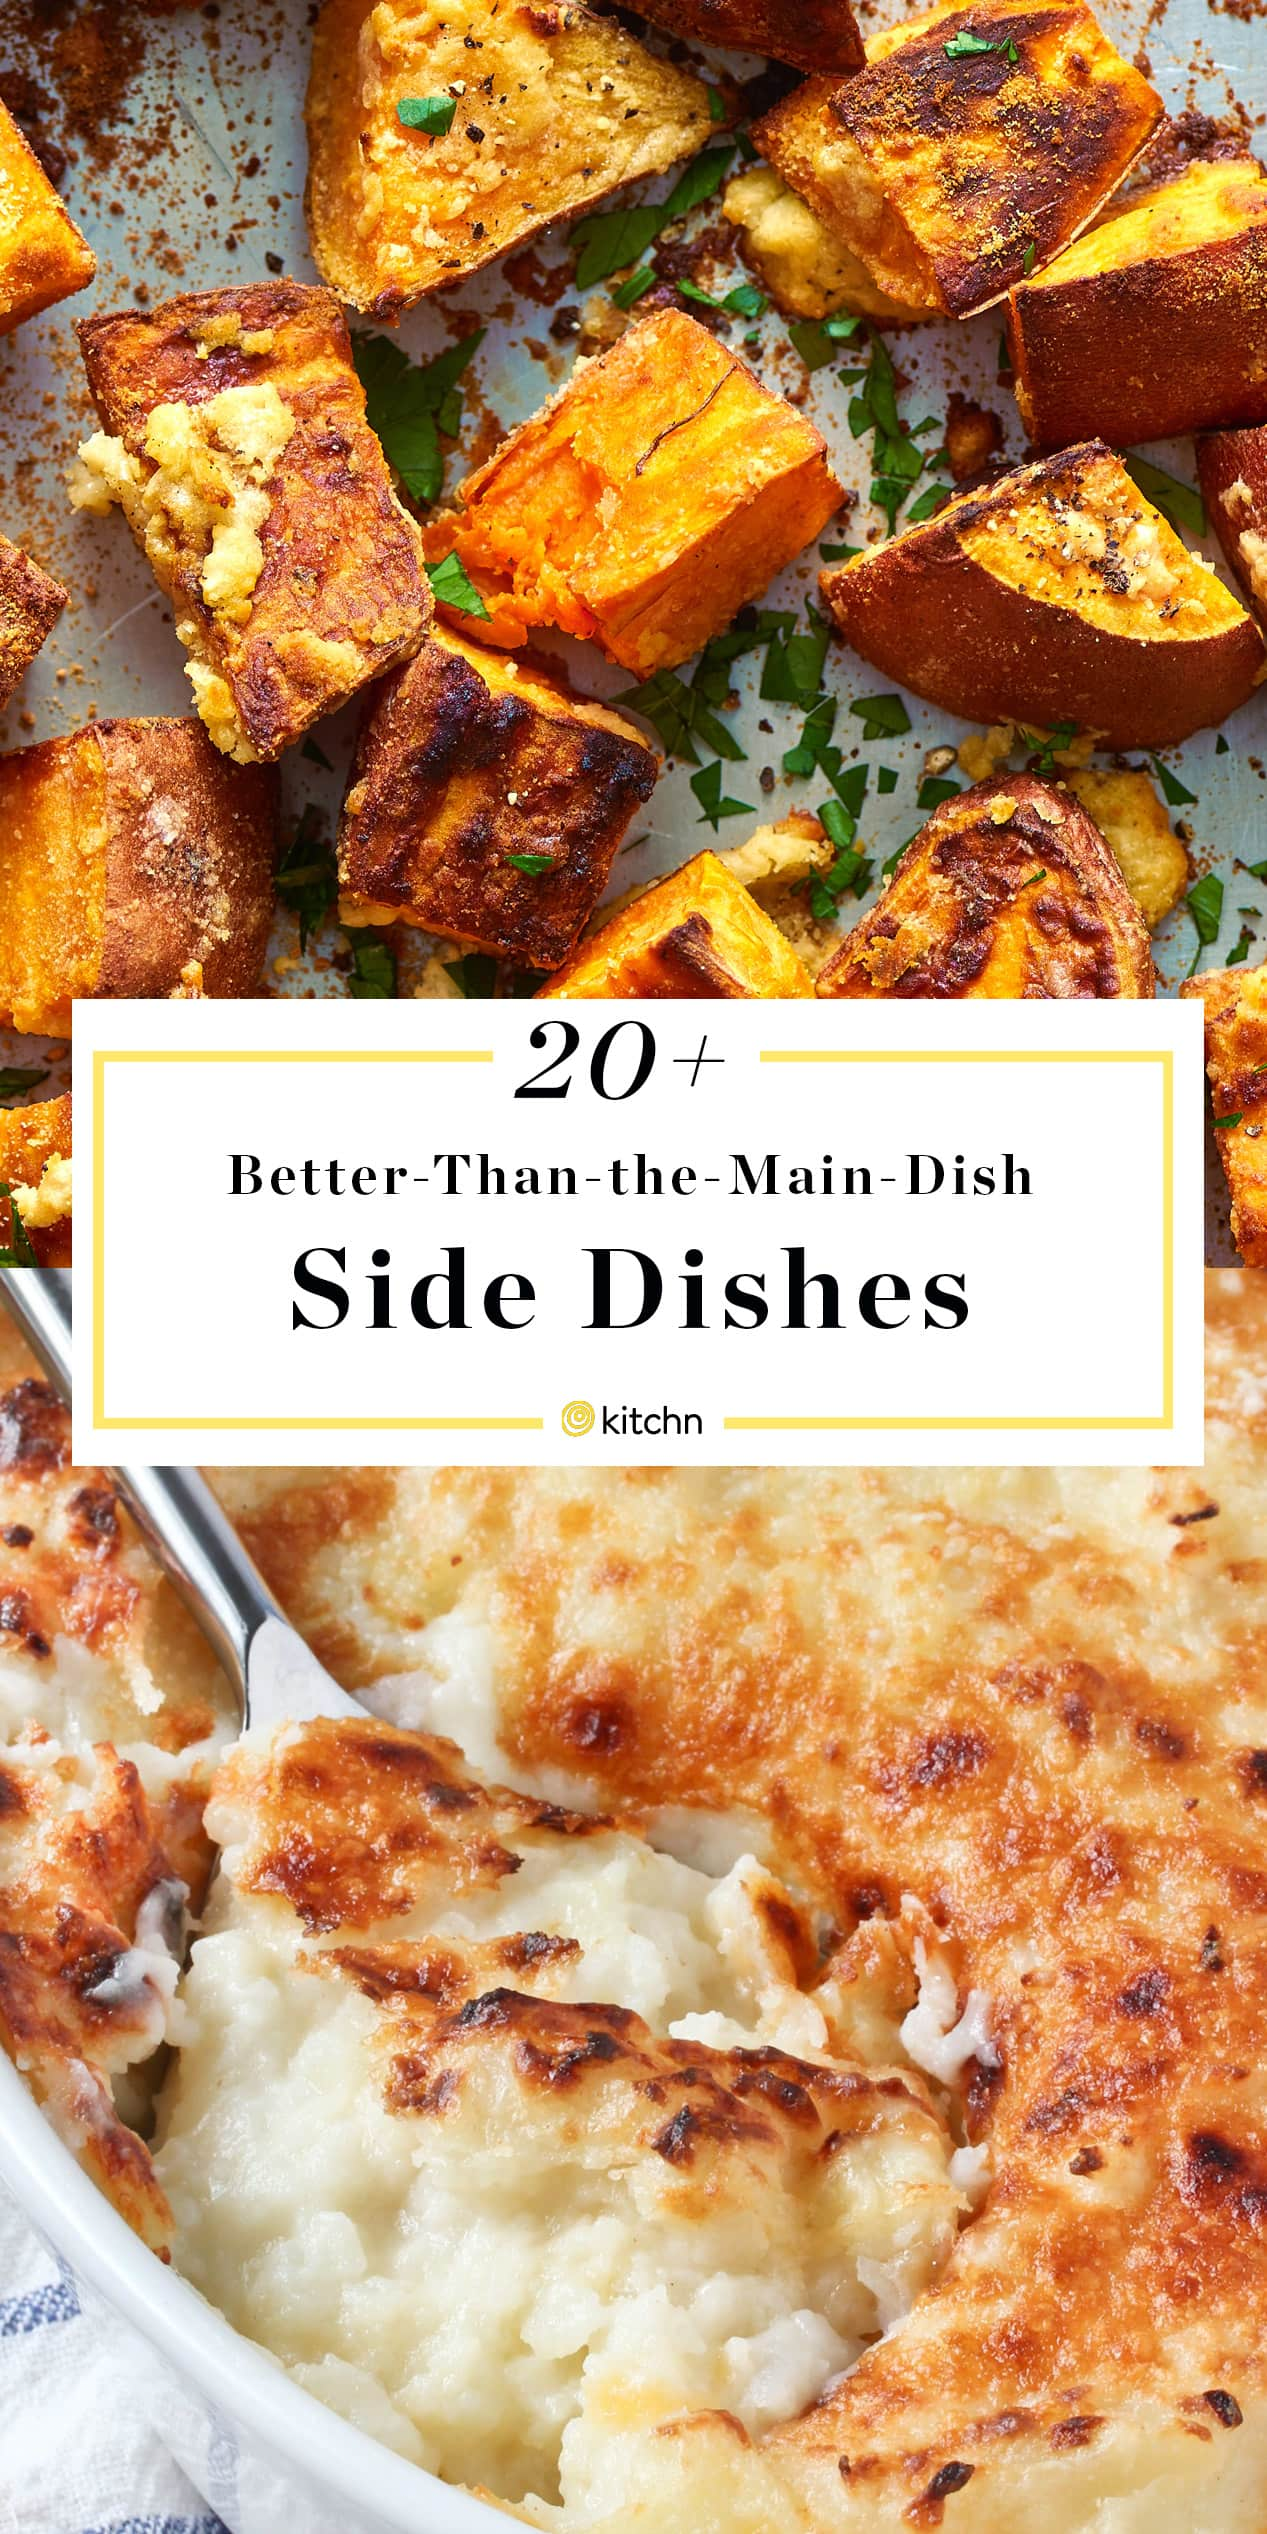 Sides That Are Better Than the Main Dish